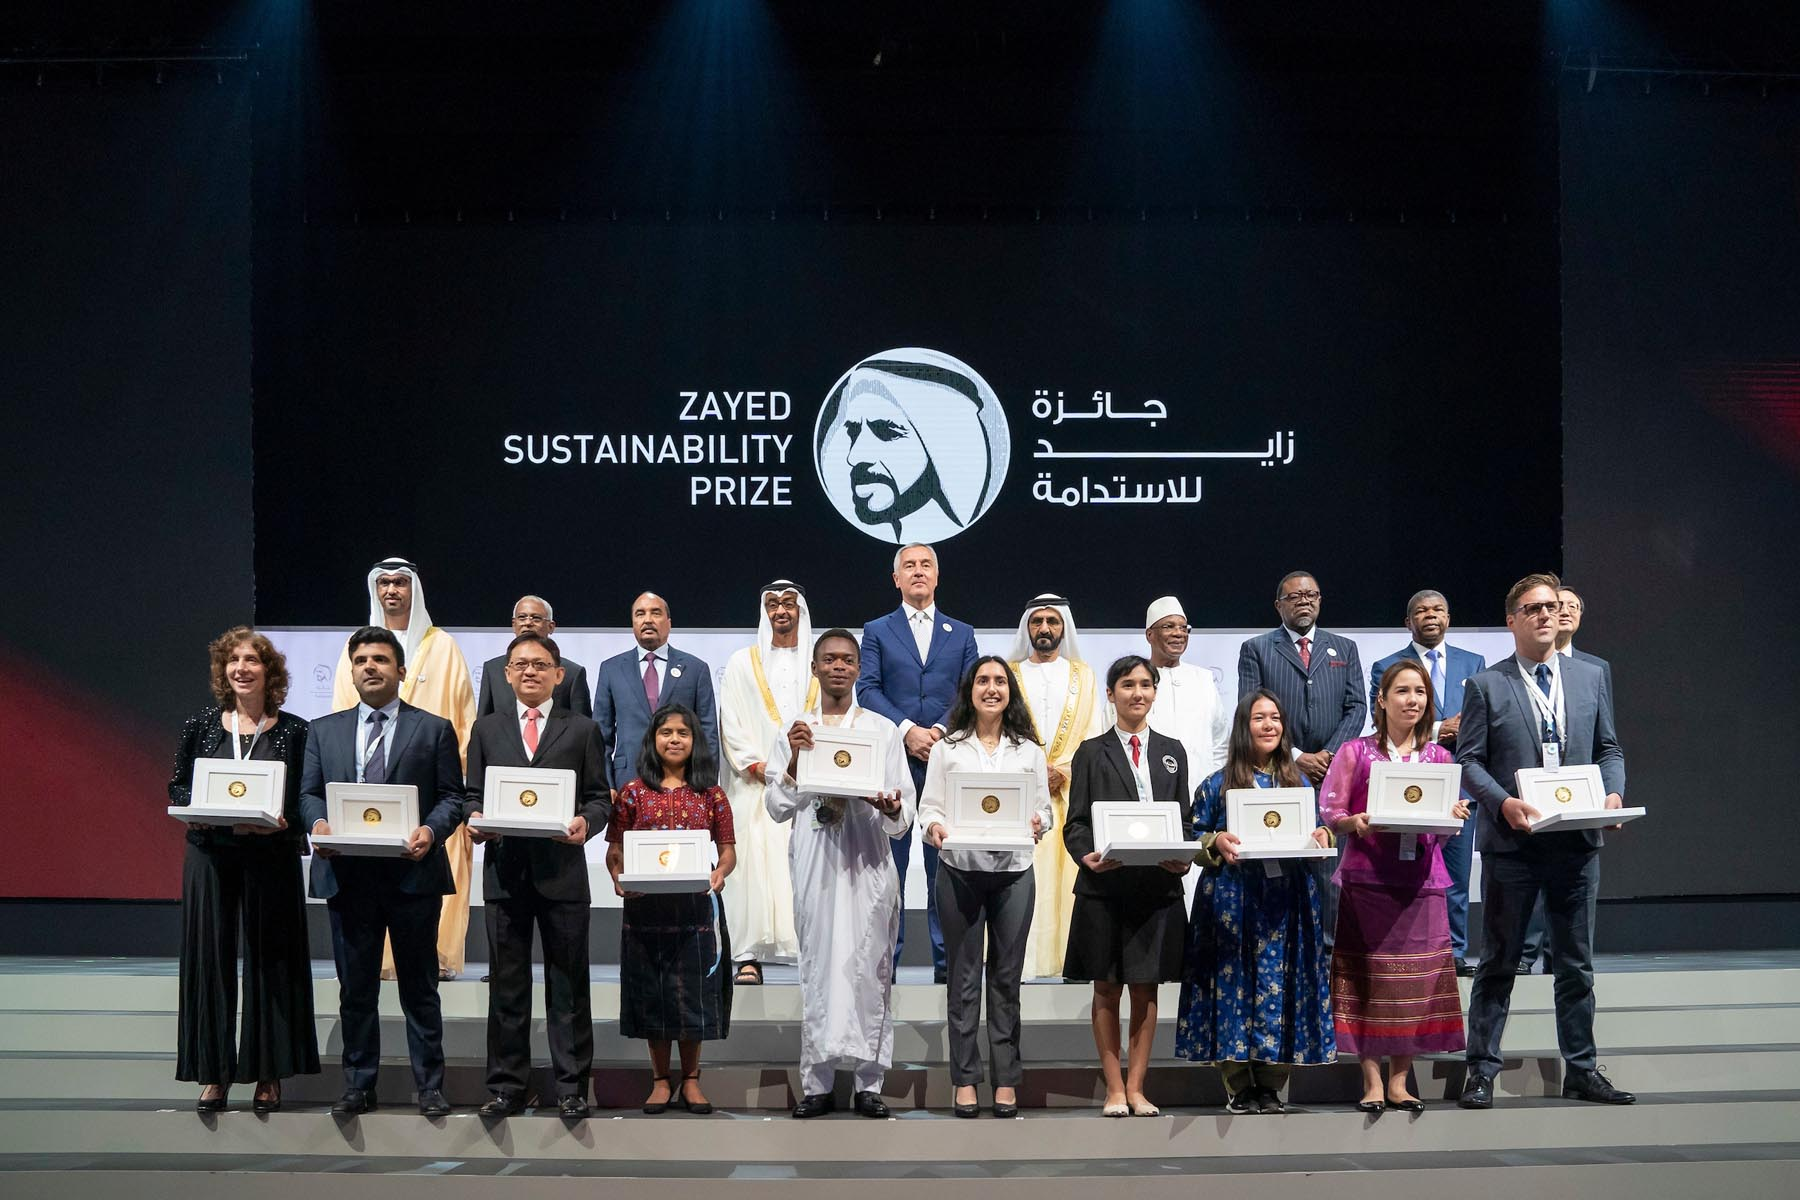 Abu Dhabi Crown Prince Sheikh Mohammed bin Zayed al-Nahyan  (2nd row, 4th L) and UAE Vice-President Sheikh Mohamed bin Rashid Al Maktoum (2nd row, 6th L) pose with the winners of the Zayed Sustainability Prize for Energy. ( Mohamed Al Hammadi)